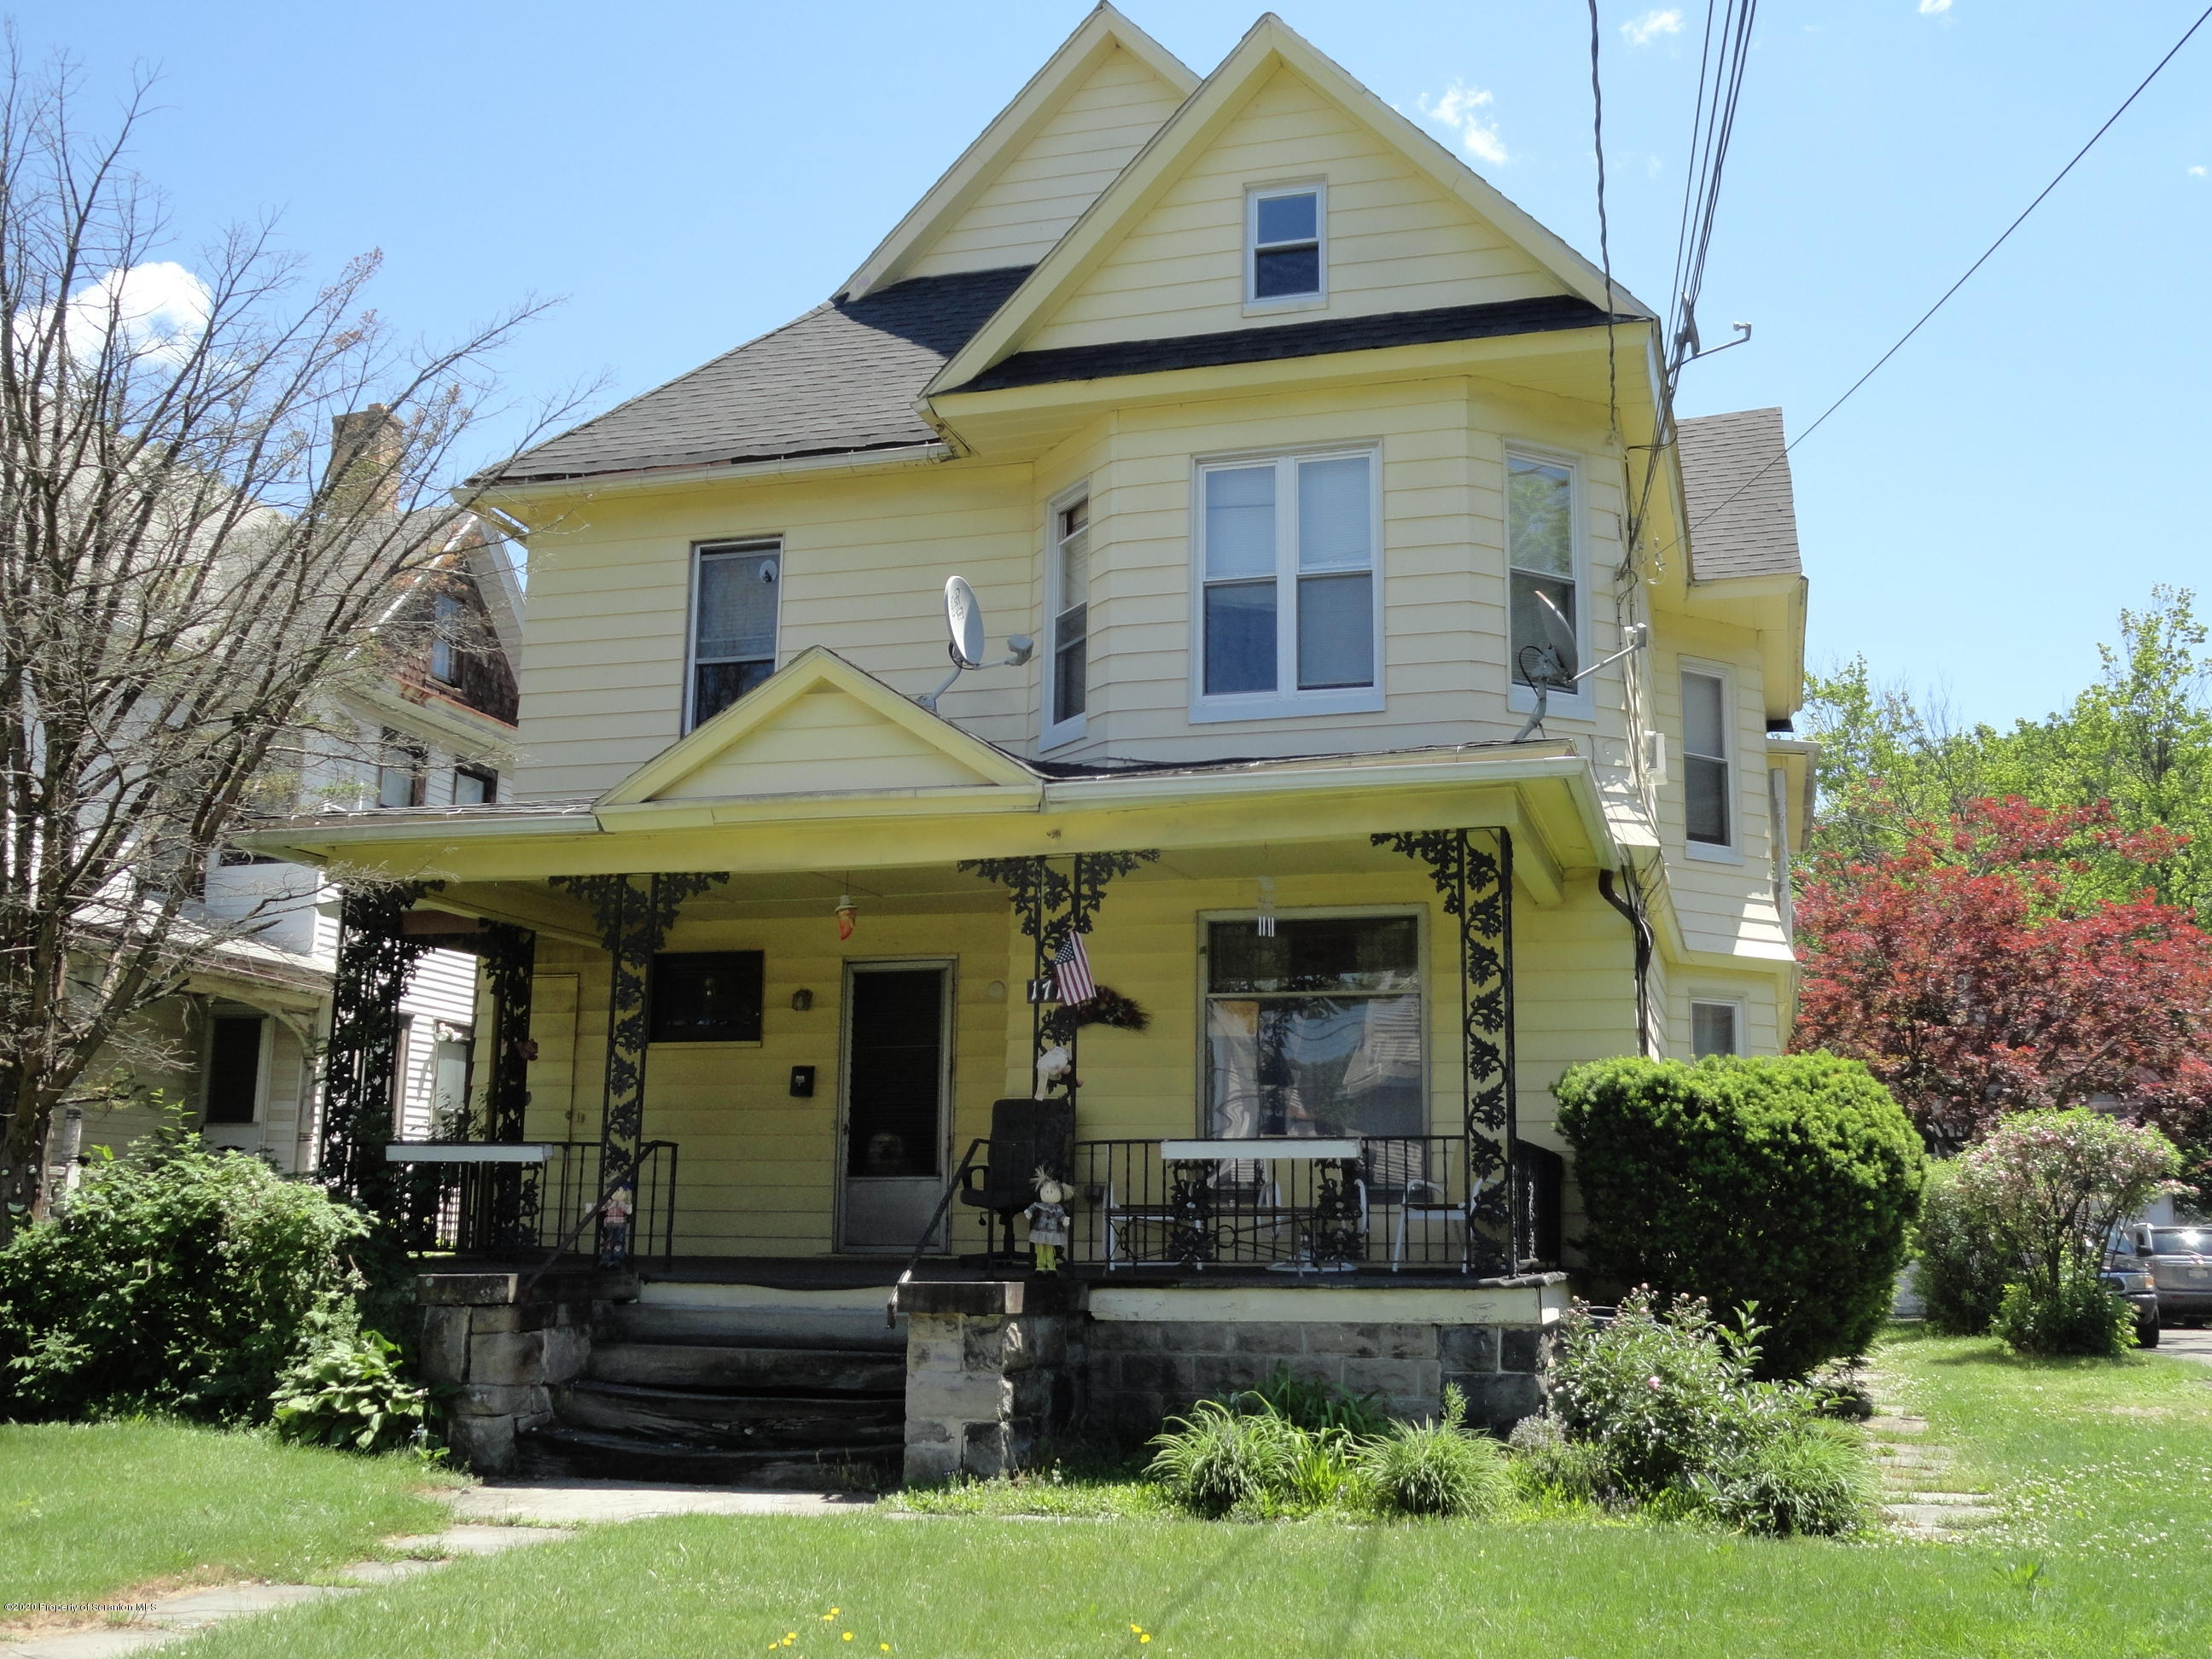 1710 Sanderson Ave, Scranton, Pennsylvania 18509, ,Multi-Family,For Sale,Sanderson,20-1705